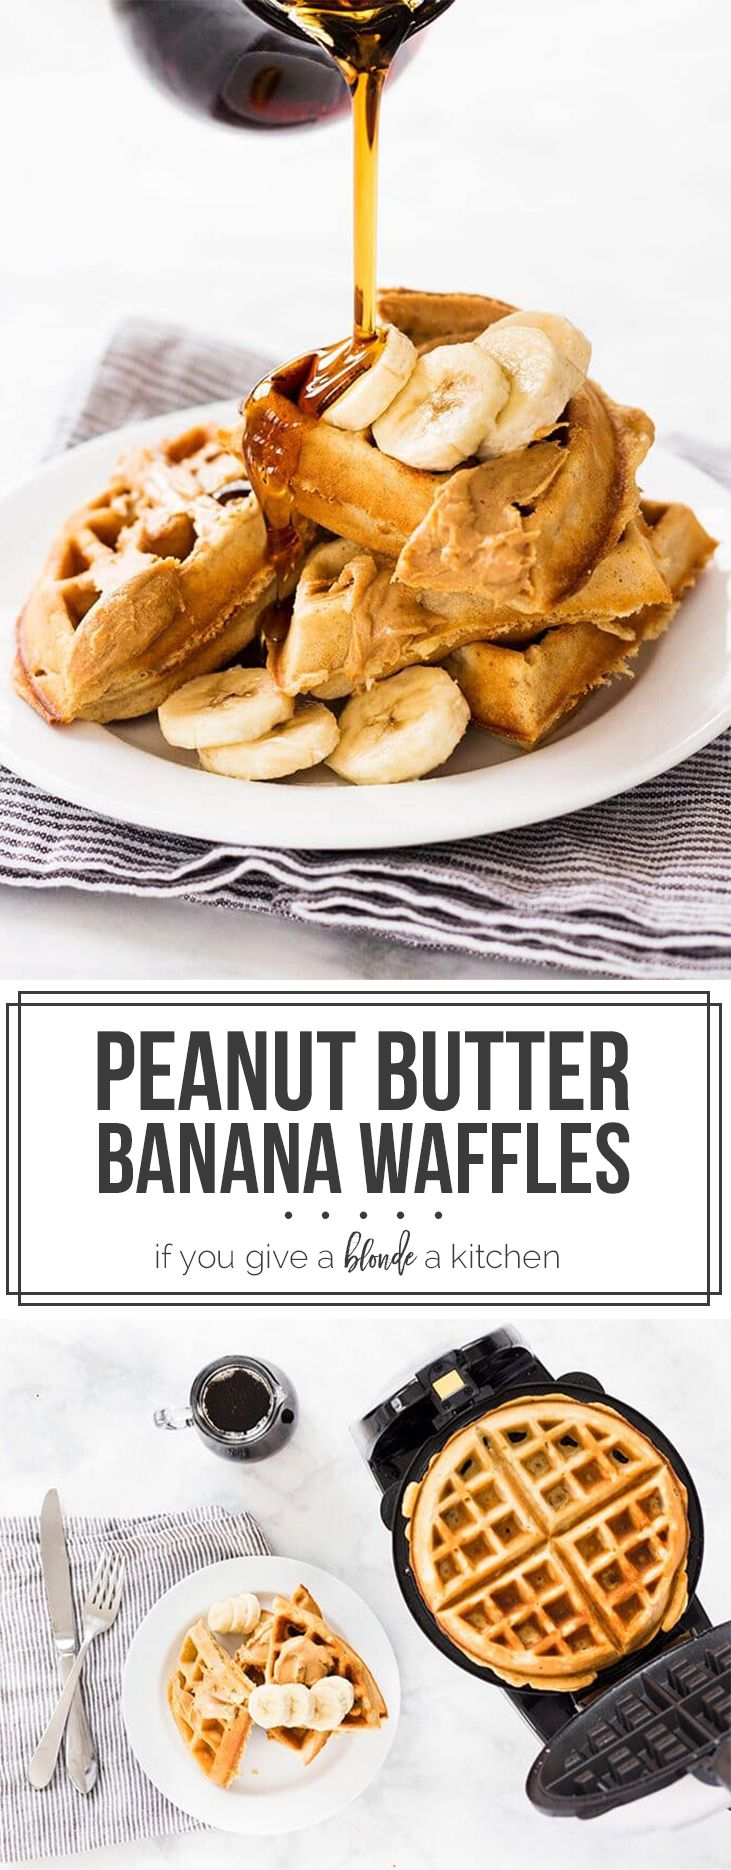 Banana peanut butter waffles are an insanely good breakfast choice. The recipe makes crisp and fluffy waffles in a Belgian waffles maker!   www.ifyougiveablondeakitchen.com